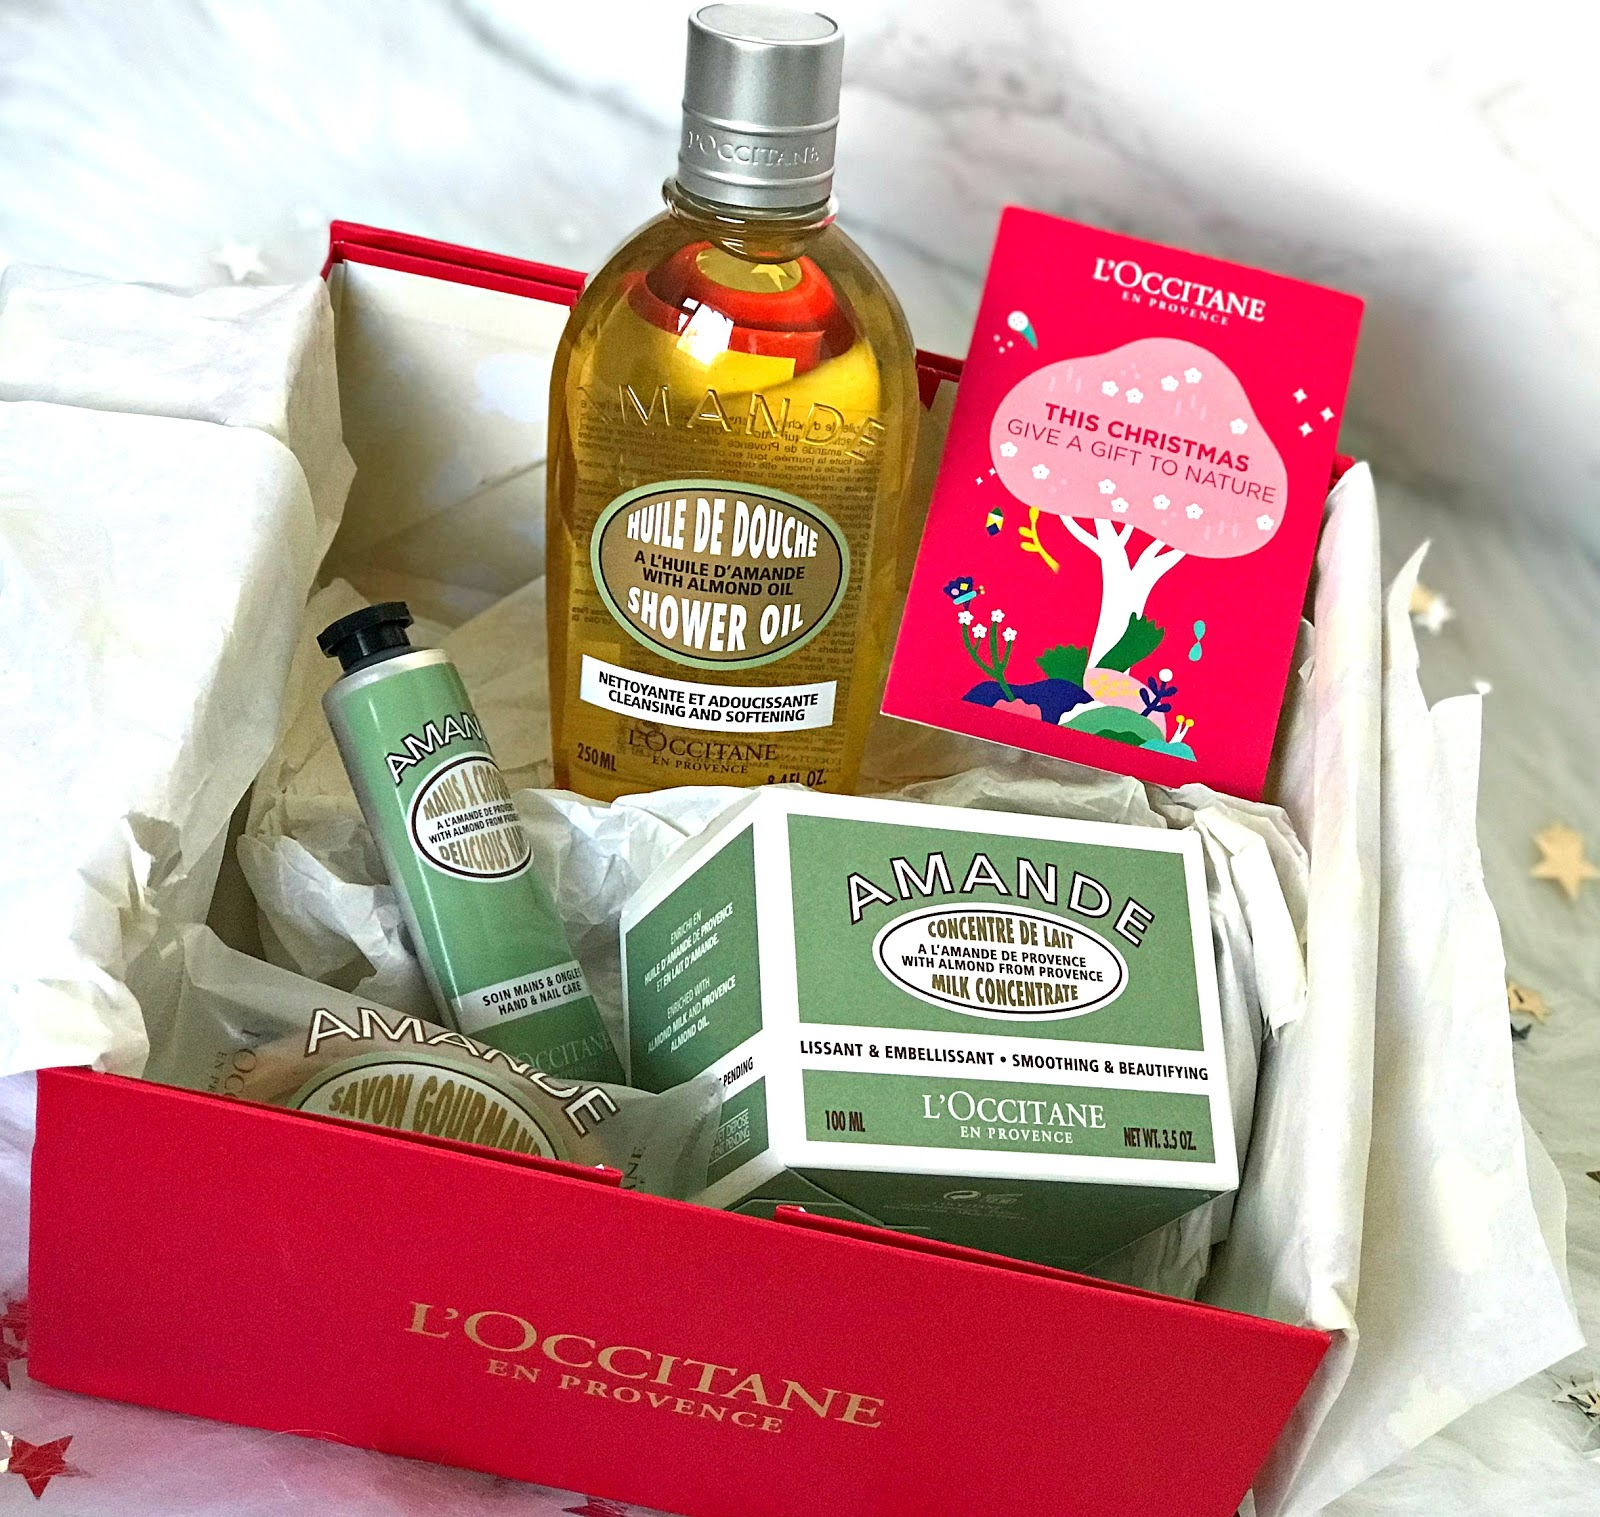 L'Occitane Almond Body Care Gift Set Review